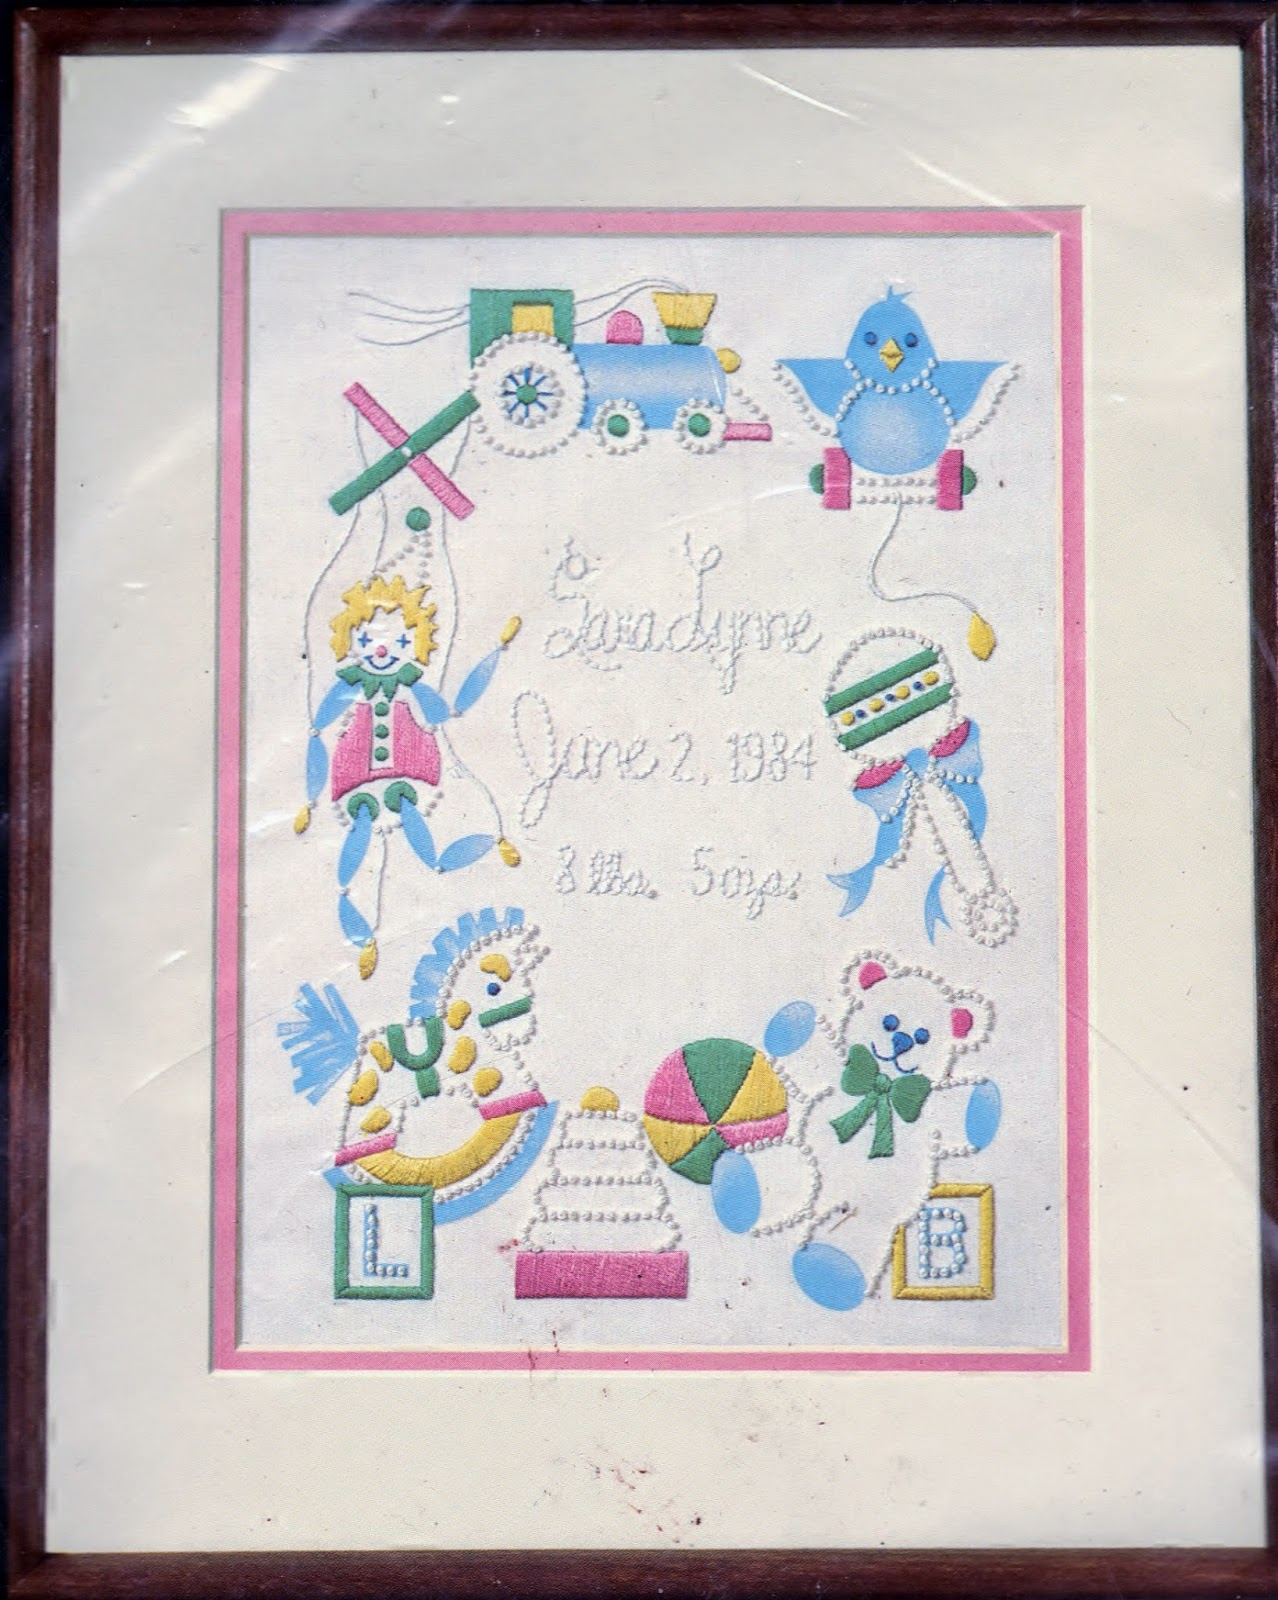 Candlewicking https://www.etsy.com/listing/218957272/candlewicking-favorite-toys-birth-record